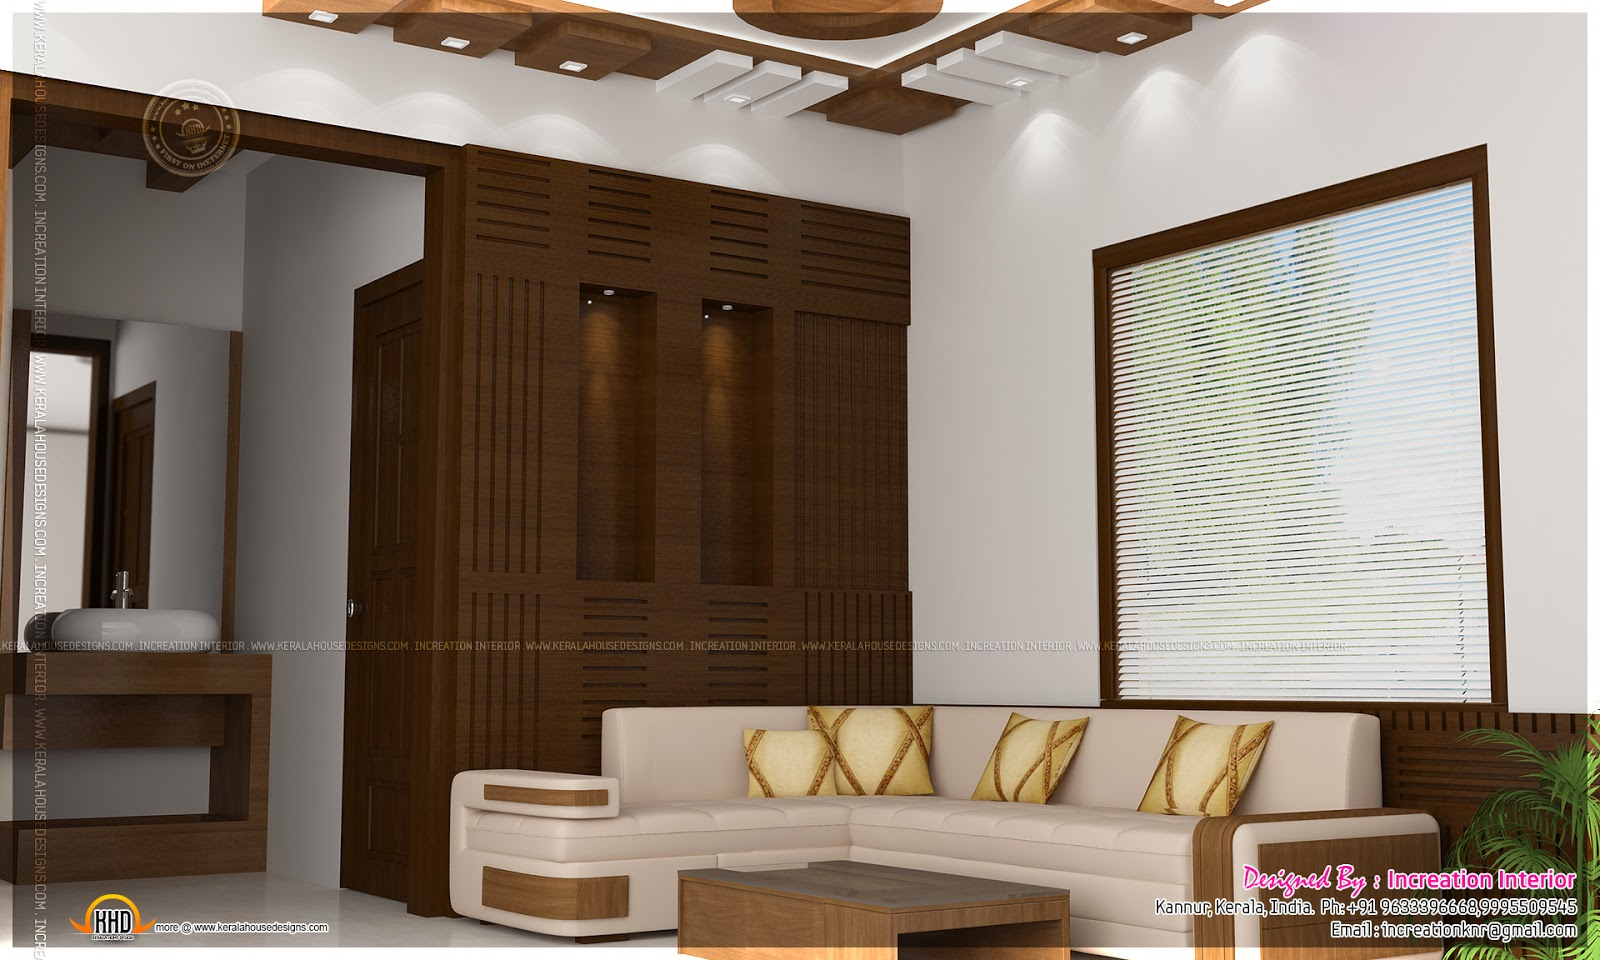 Interior design ideas by increation interior kerala for Kerala homes interior designs